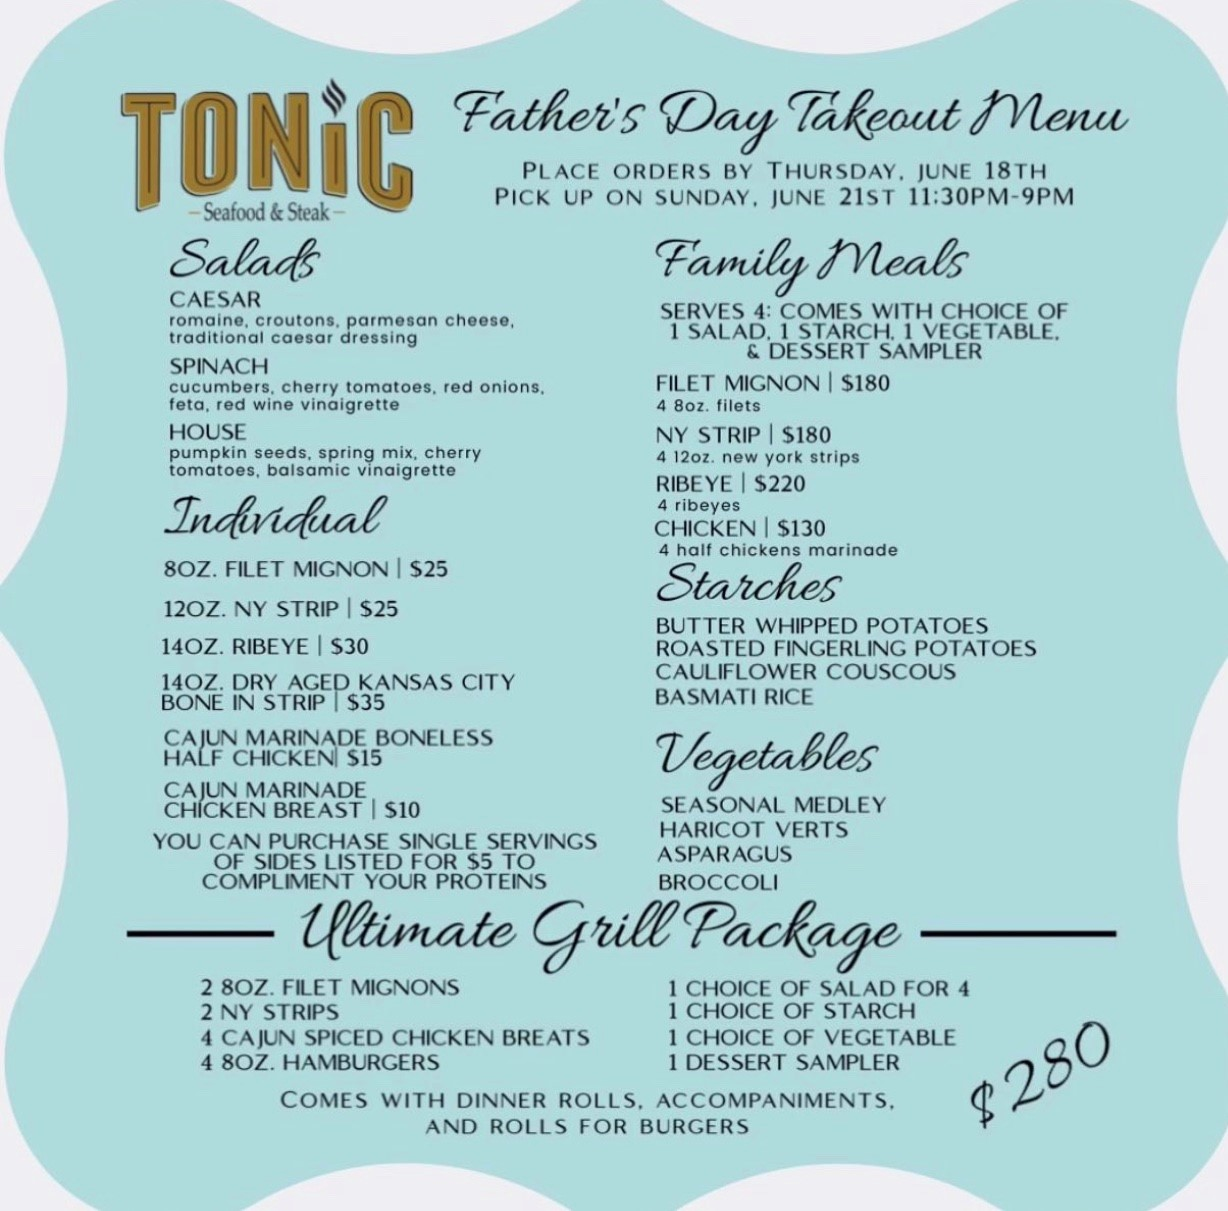 tonic fathers day